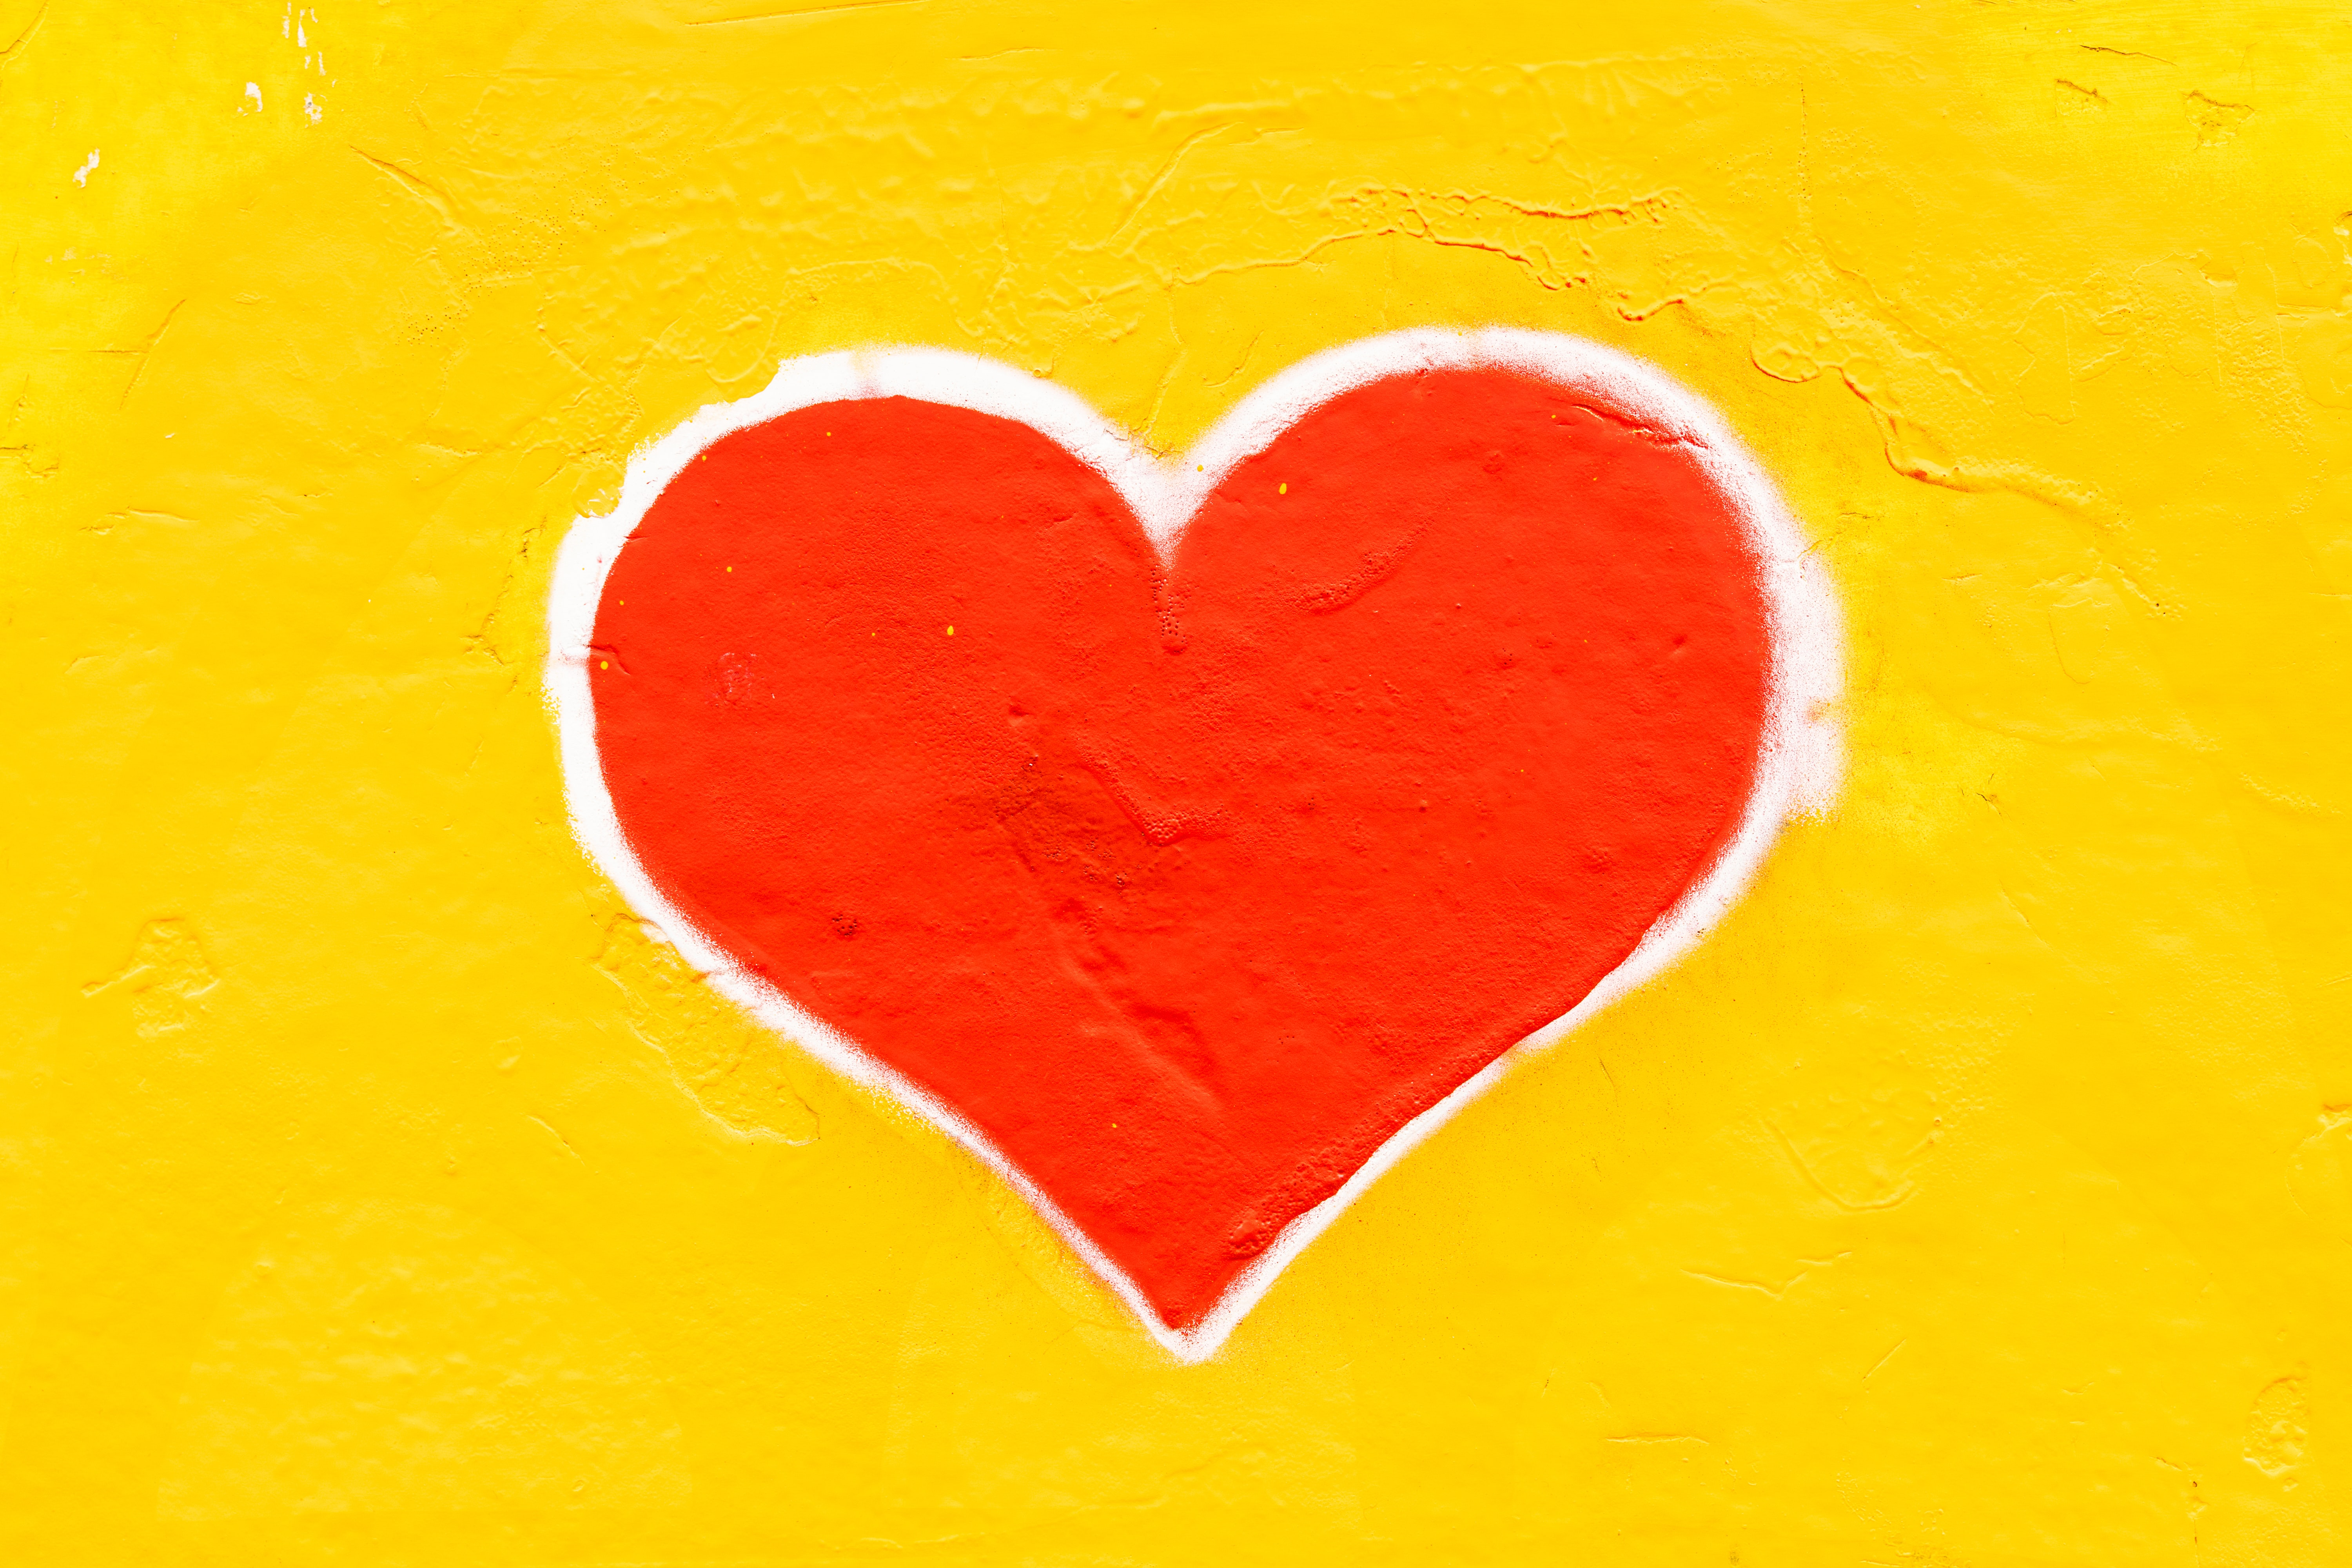 Red heart on yellow background